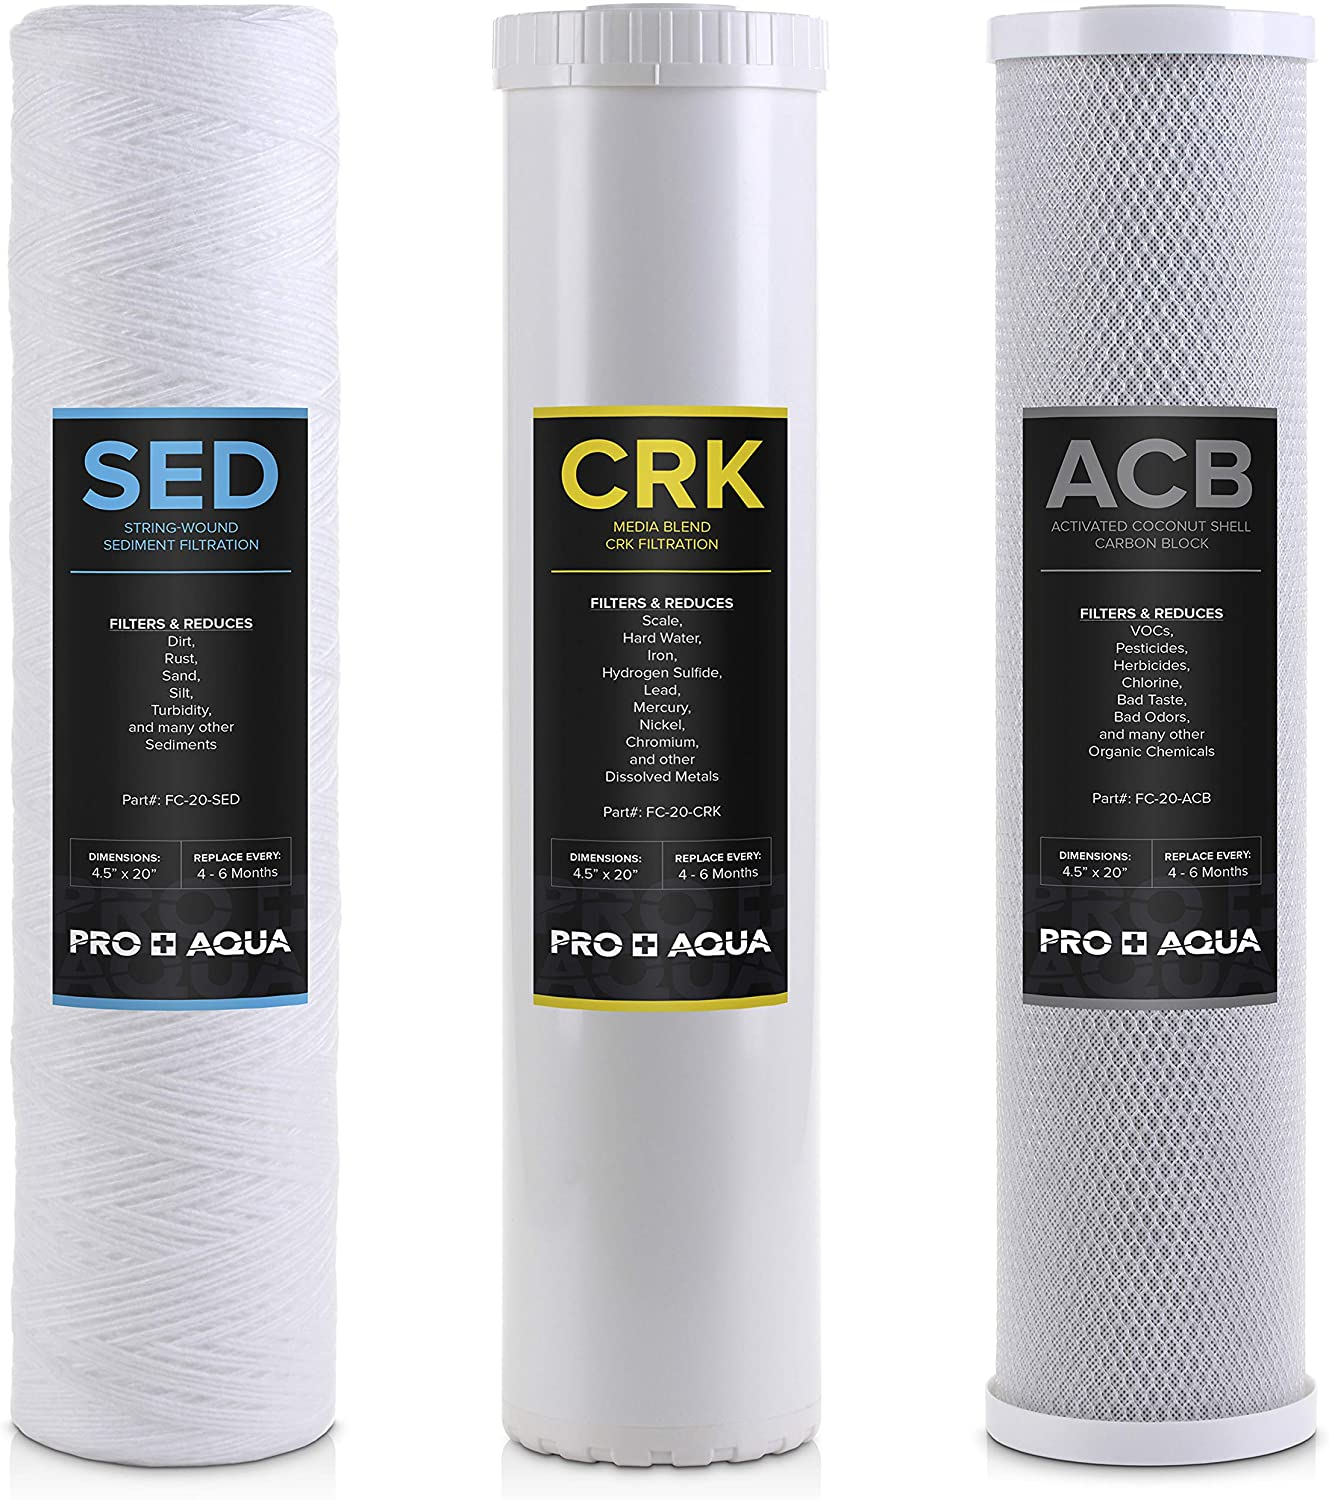 Pro+Aqua - Whole House Heavy Metals Well Water Filter Replacement Set